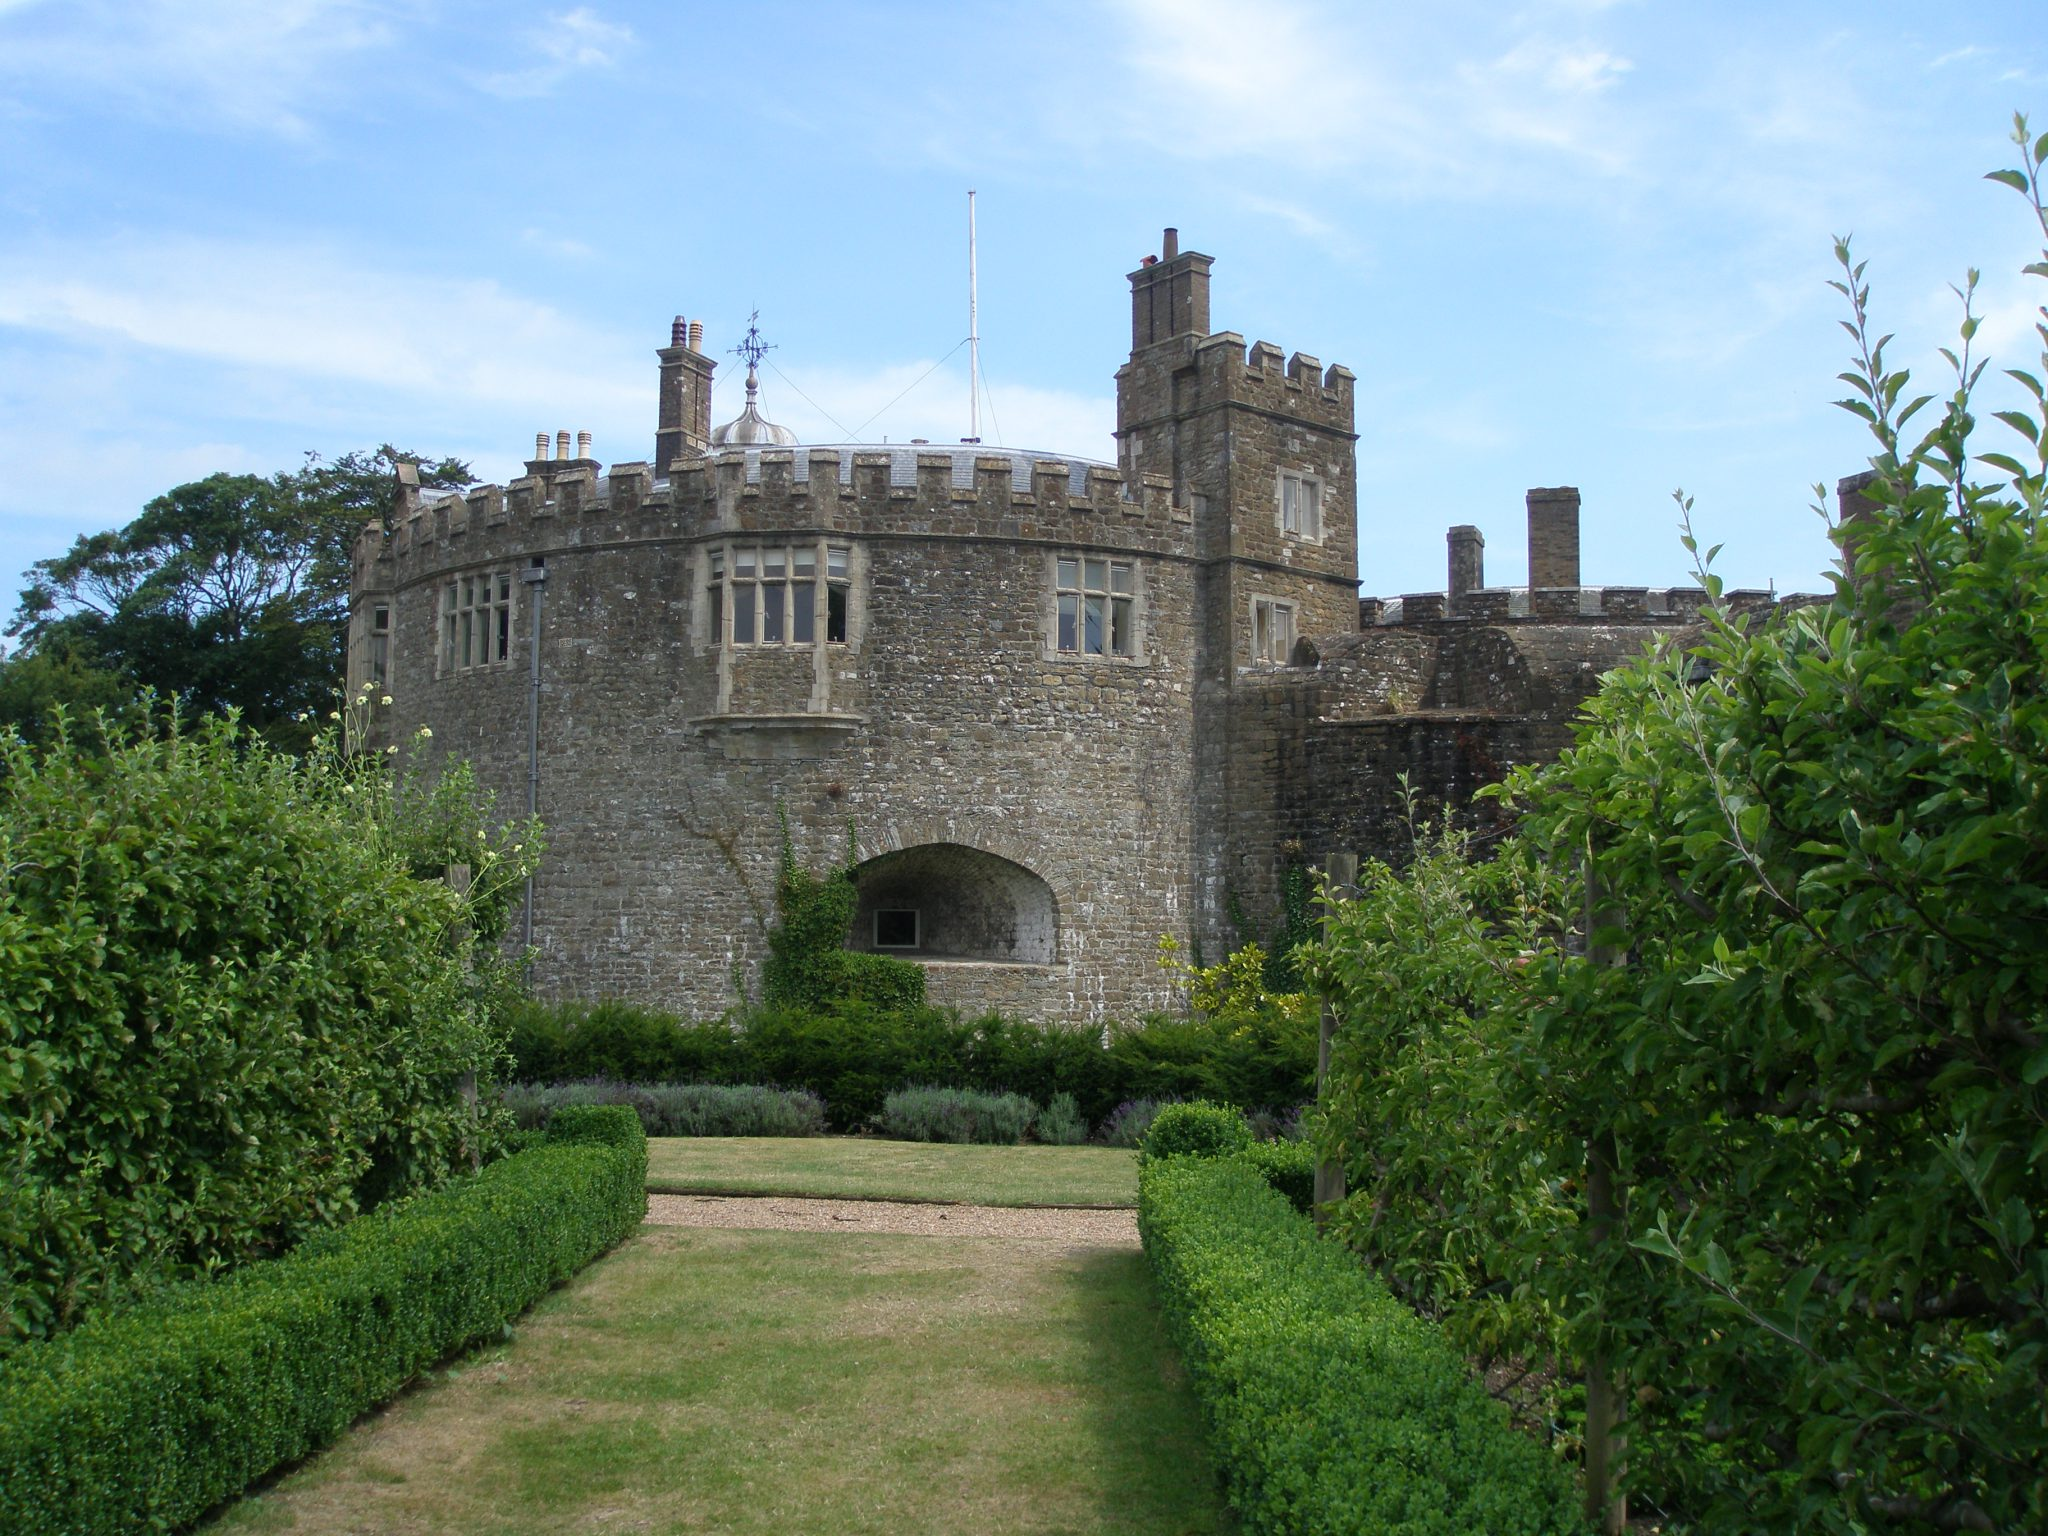 Flanked by these espaliered fruit trees in the Kitchen Garden, we returned to the Castle.